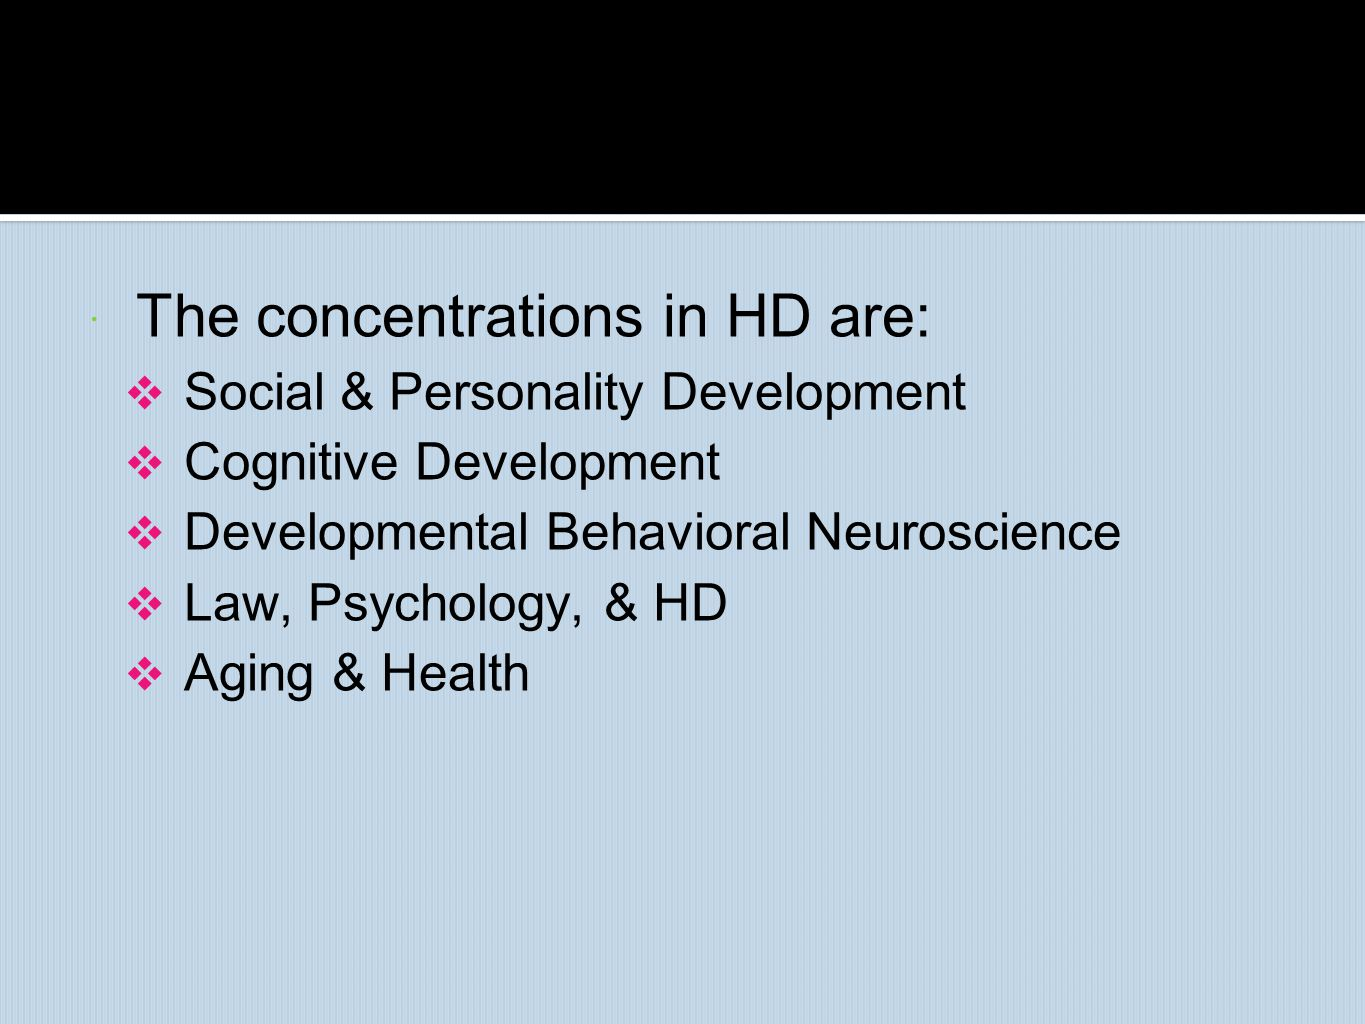 The concentrations in HD are: